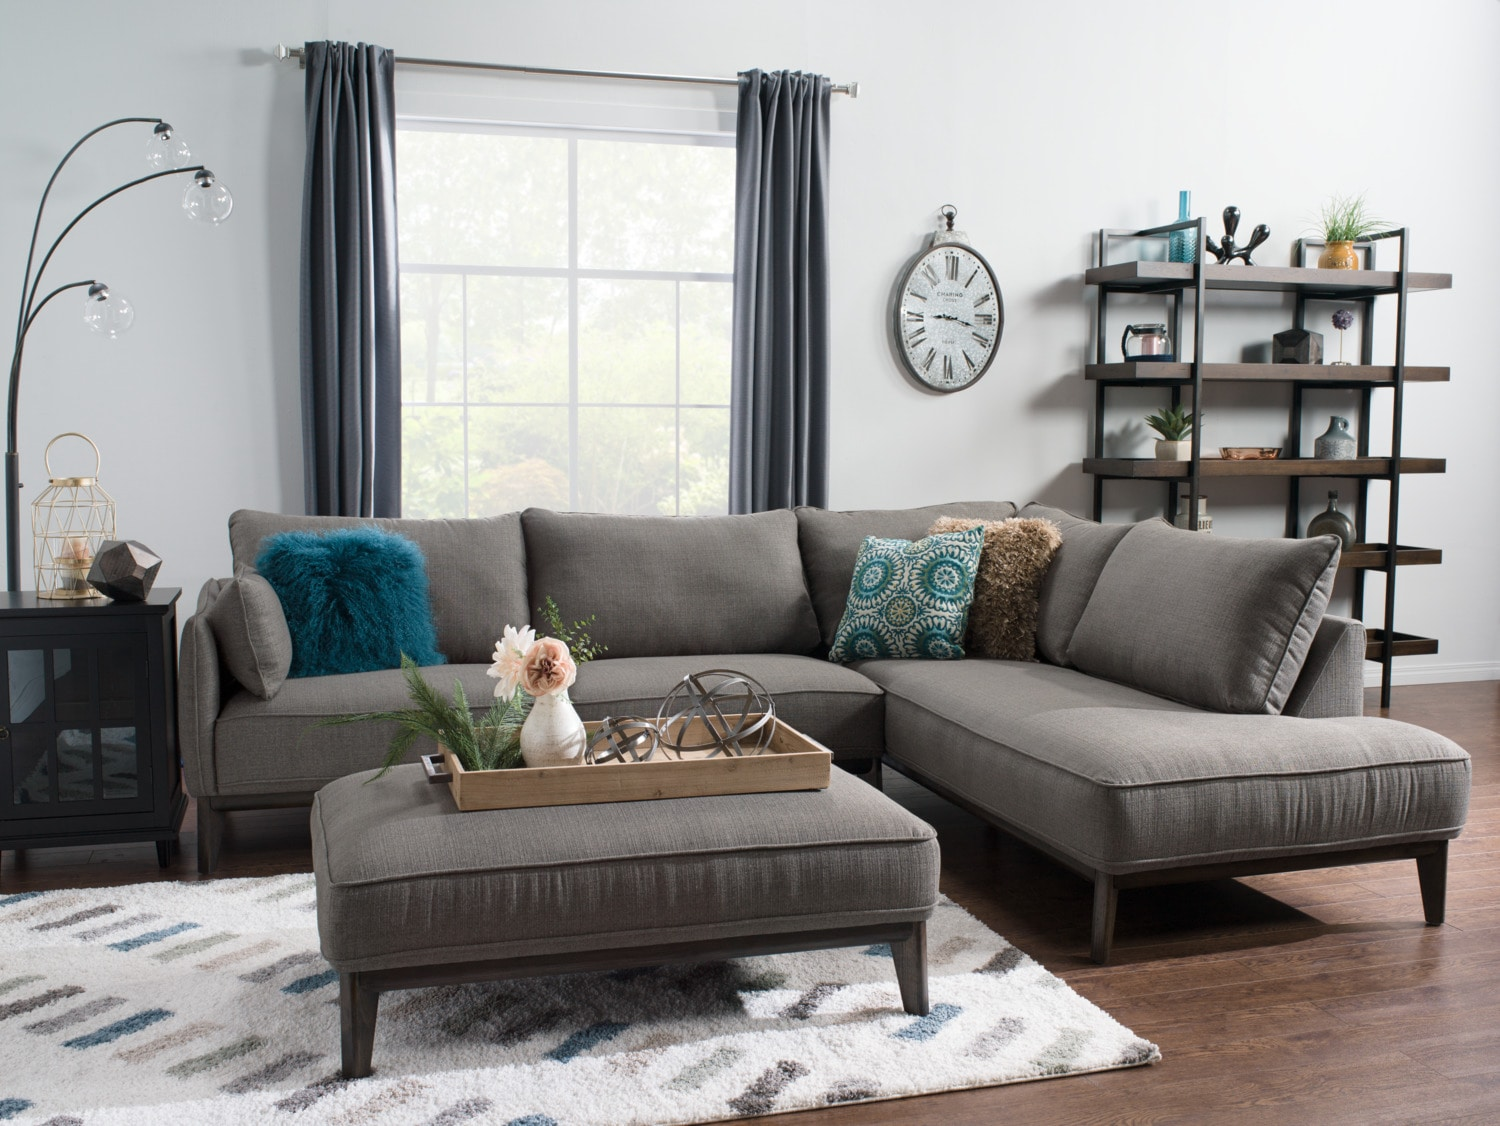 the brick cindy crawford reclining sofa whats best thing to clean arms gena 2 piece linen look fabric right facing sectional